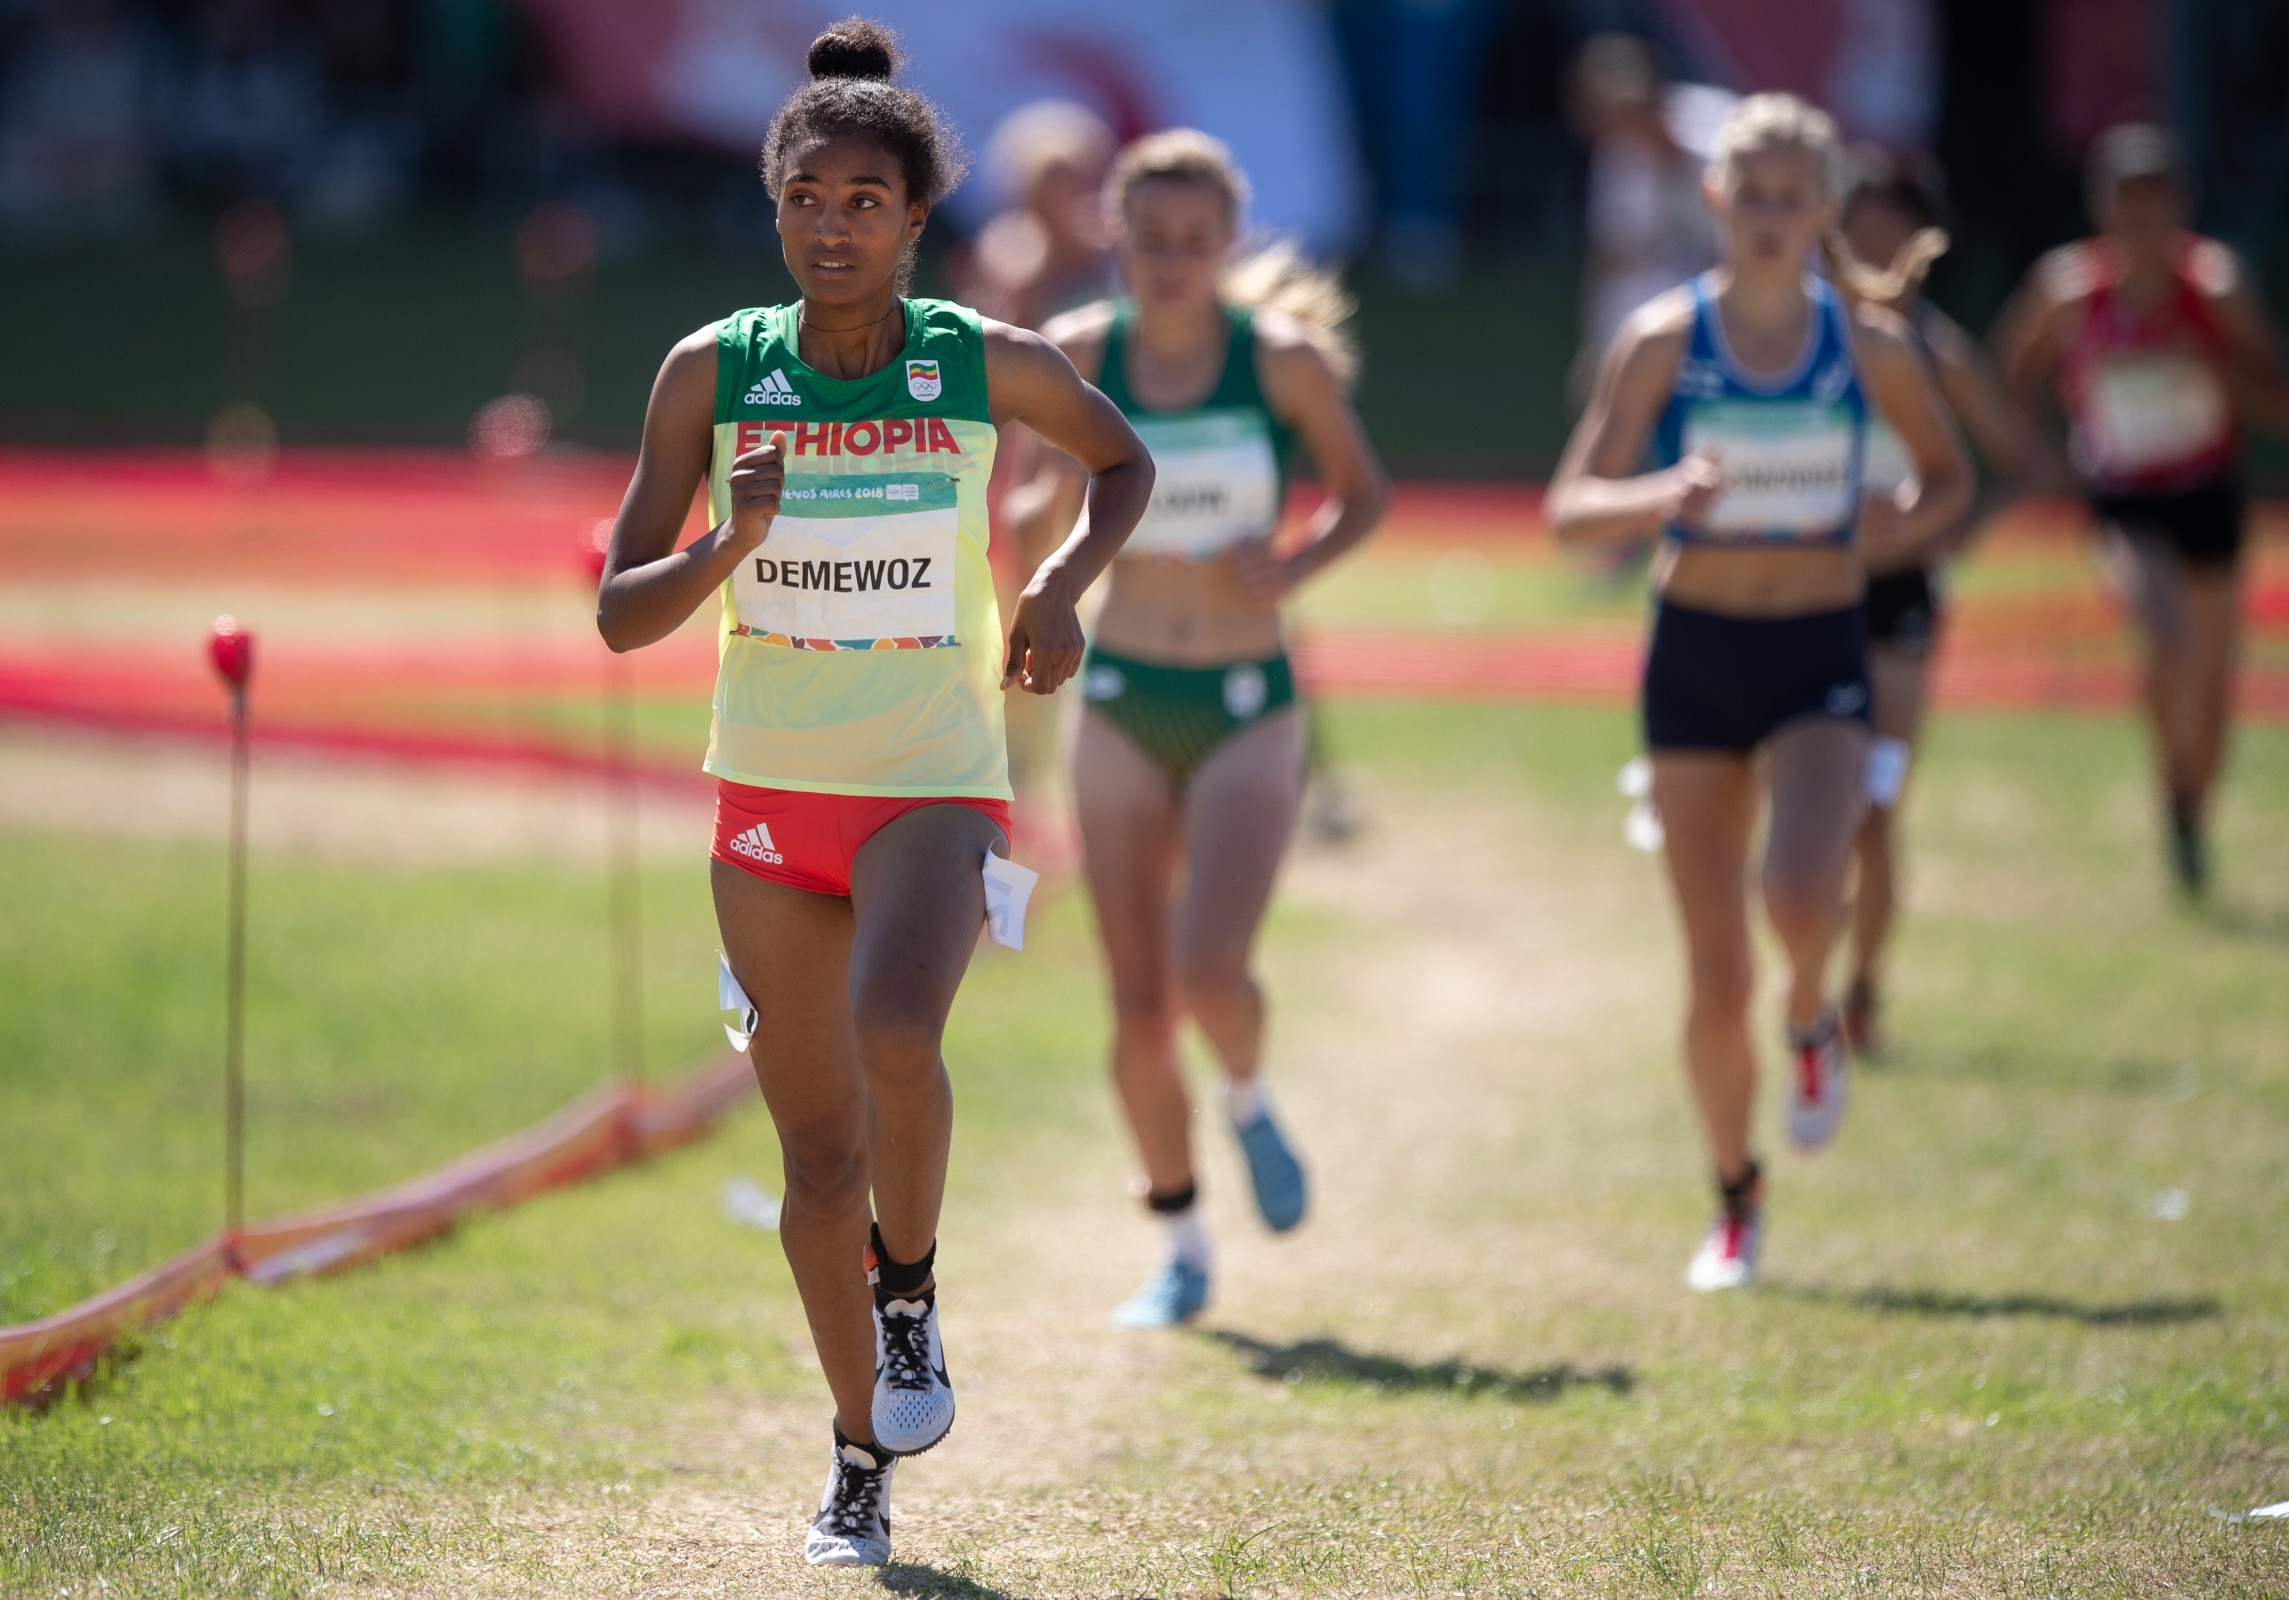 Buenos Aires 2018 - Athletics - Women's Cross Country